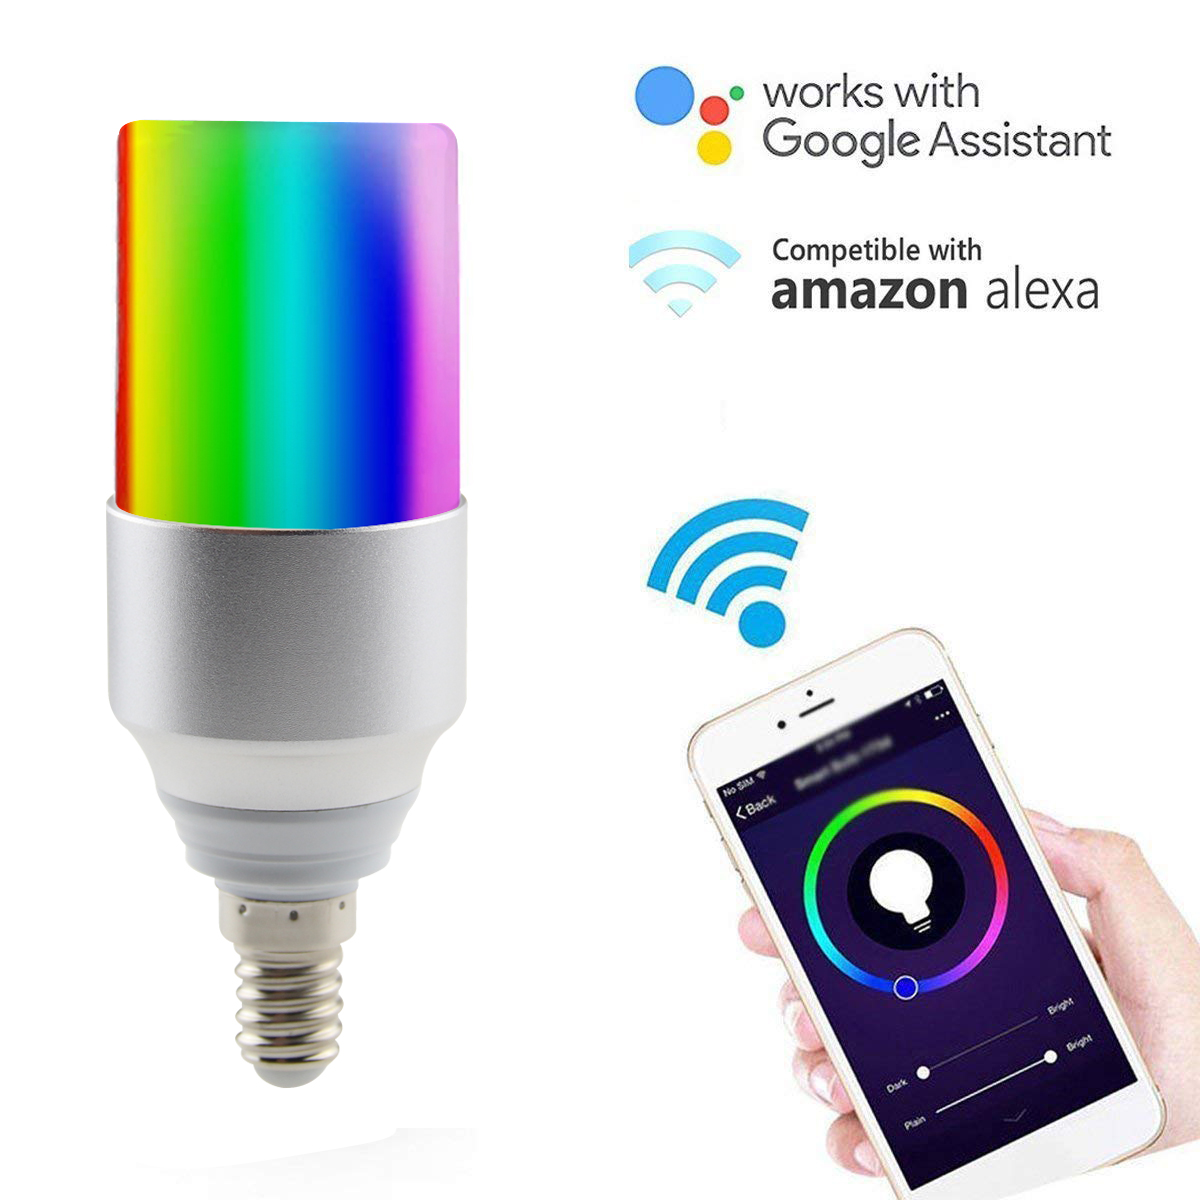 FRENKEVER E14 WiFi Smart LED Light Cylindrical Light Dimmable RGB Light Bulbs Smart Remote Control Work with Alexa Google Home mini wifi rgb strip light controller with music control and voice control compatible with google home